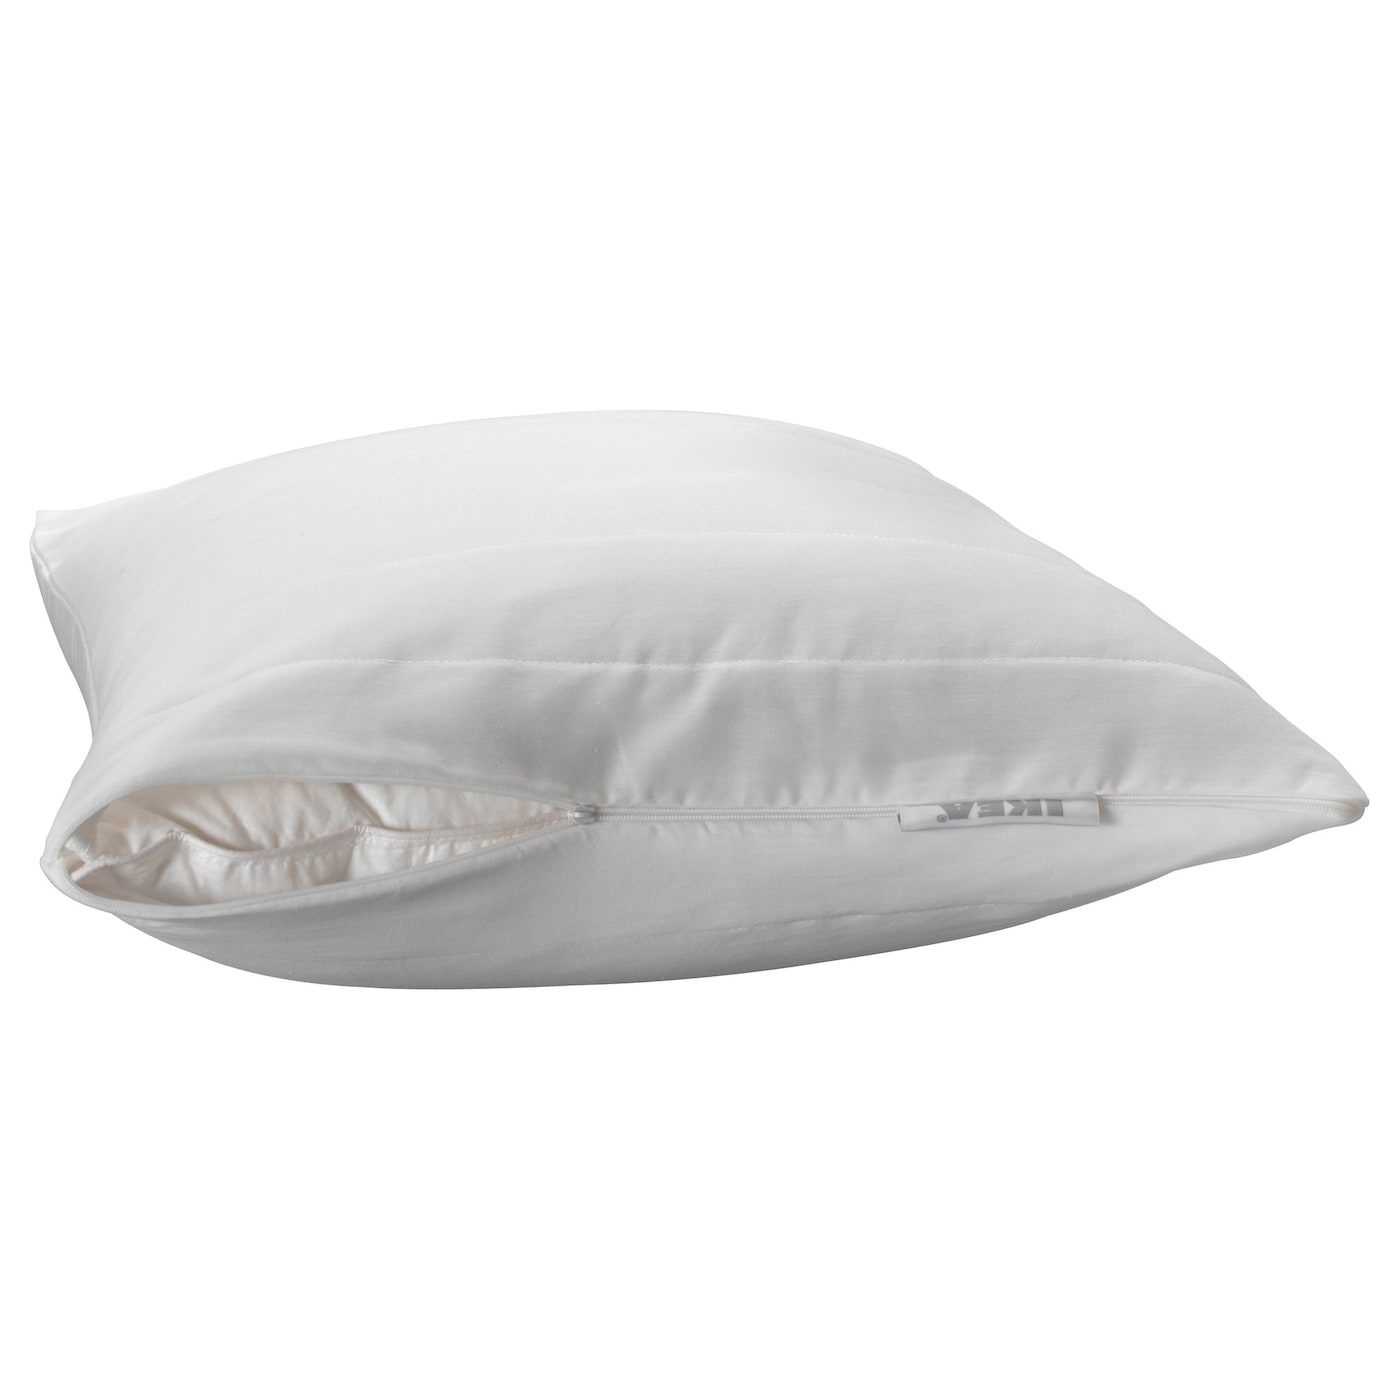 chester protectors pillow london prev product